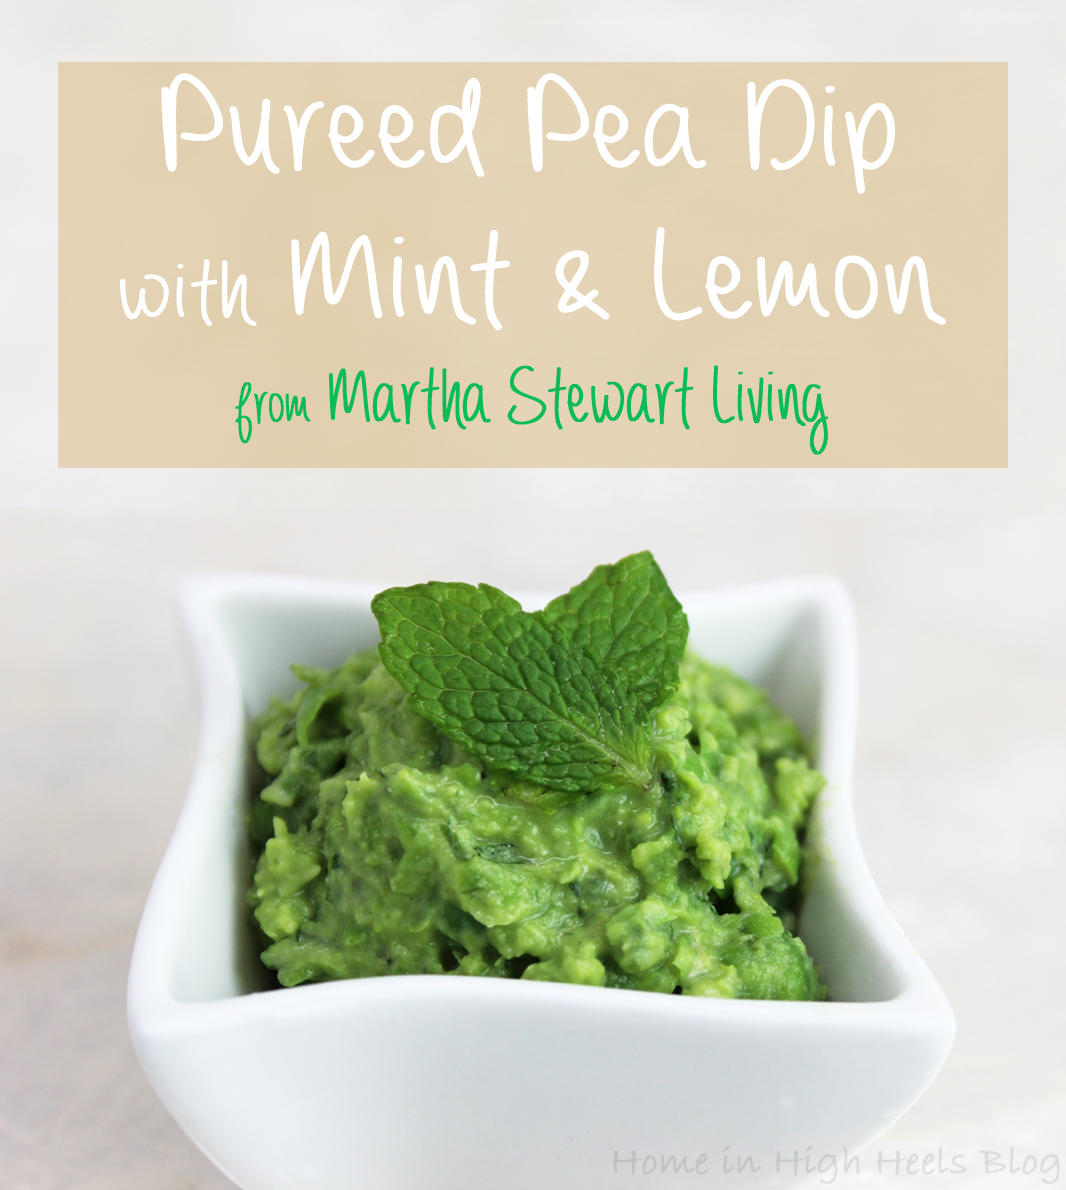 Pureed Pea Dip with Mint & Lemon Recipe from Martha Stewart Living on Home in High Heels